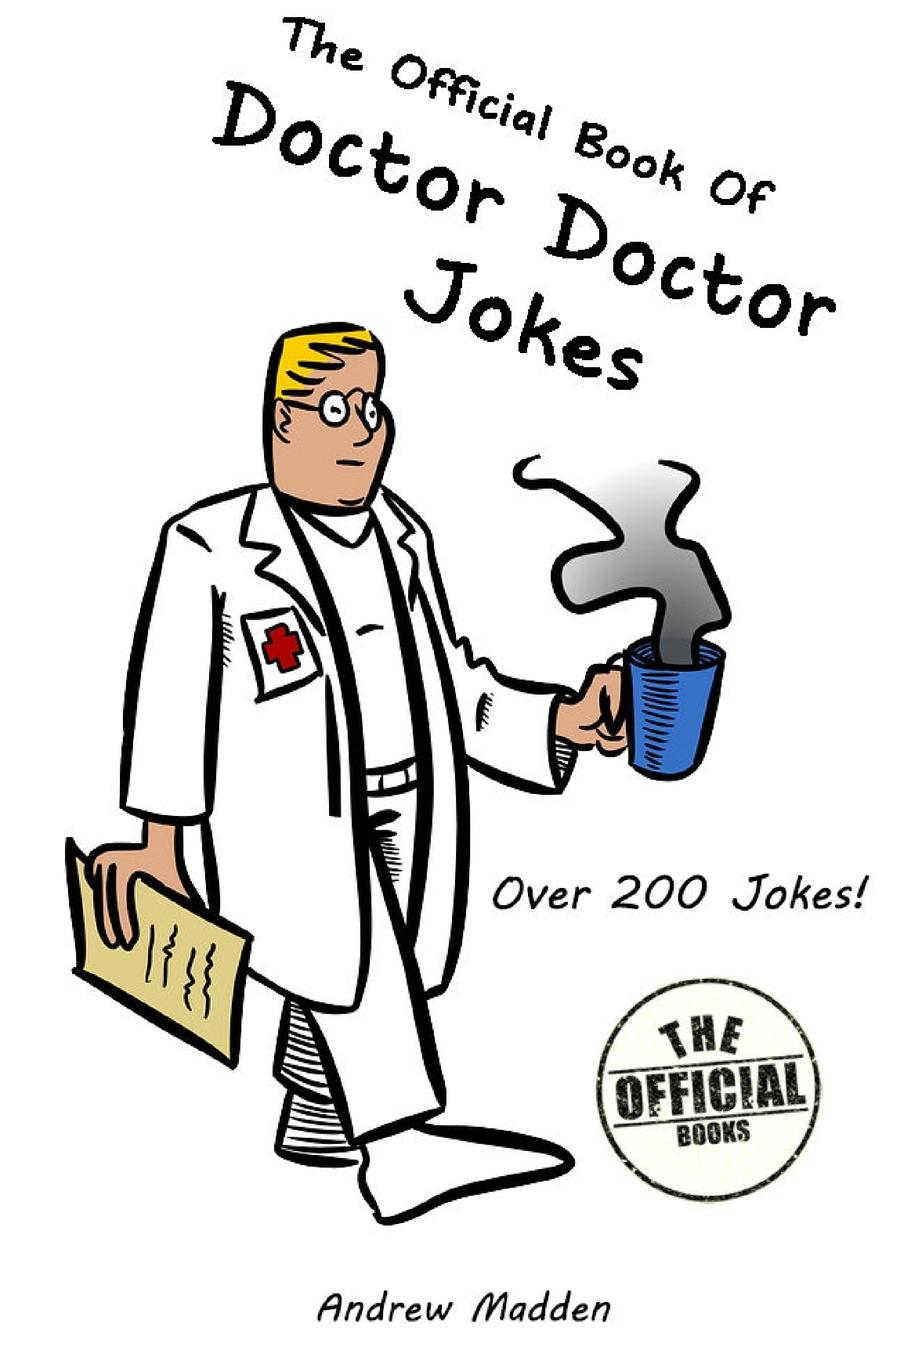 Andrew Madden The Official Book of Doctor Doctor Jokes the bumper book of very silly jokes